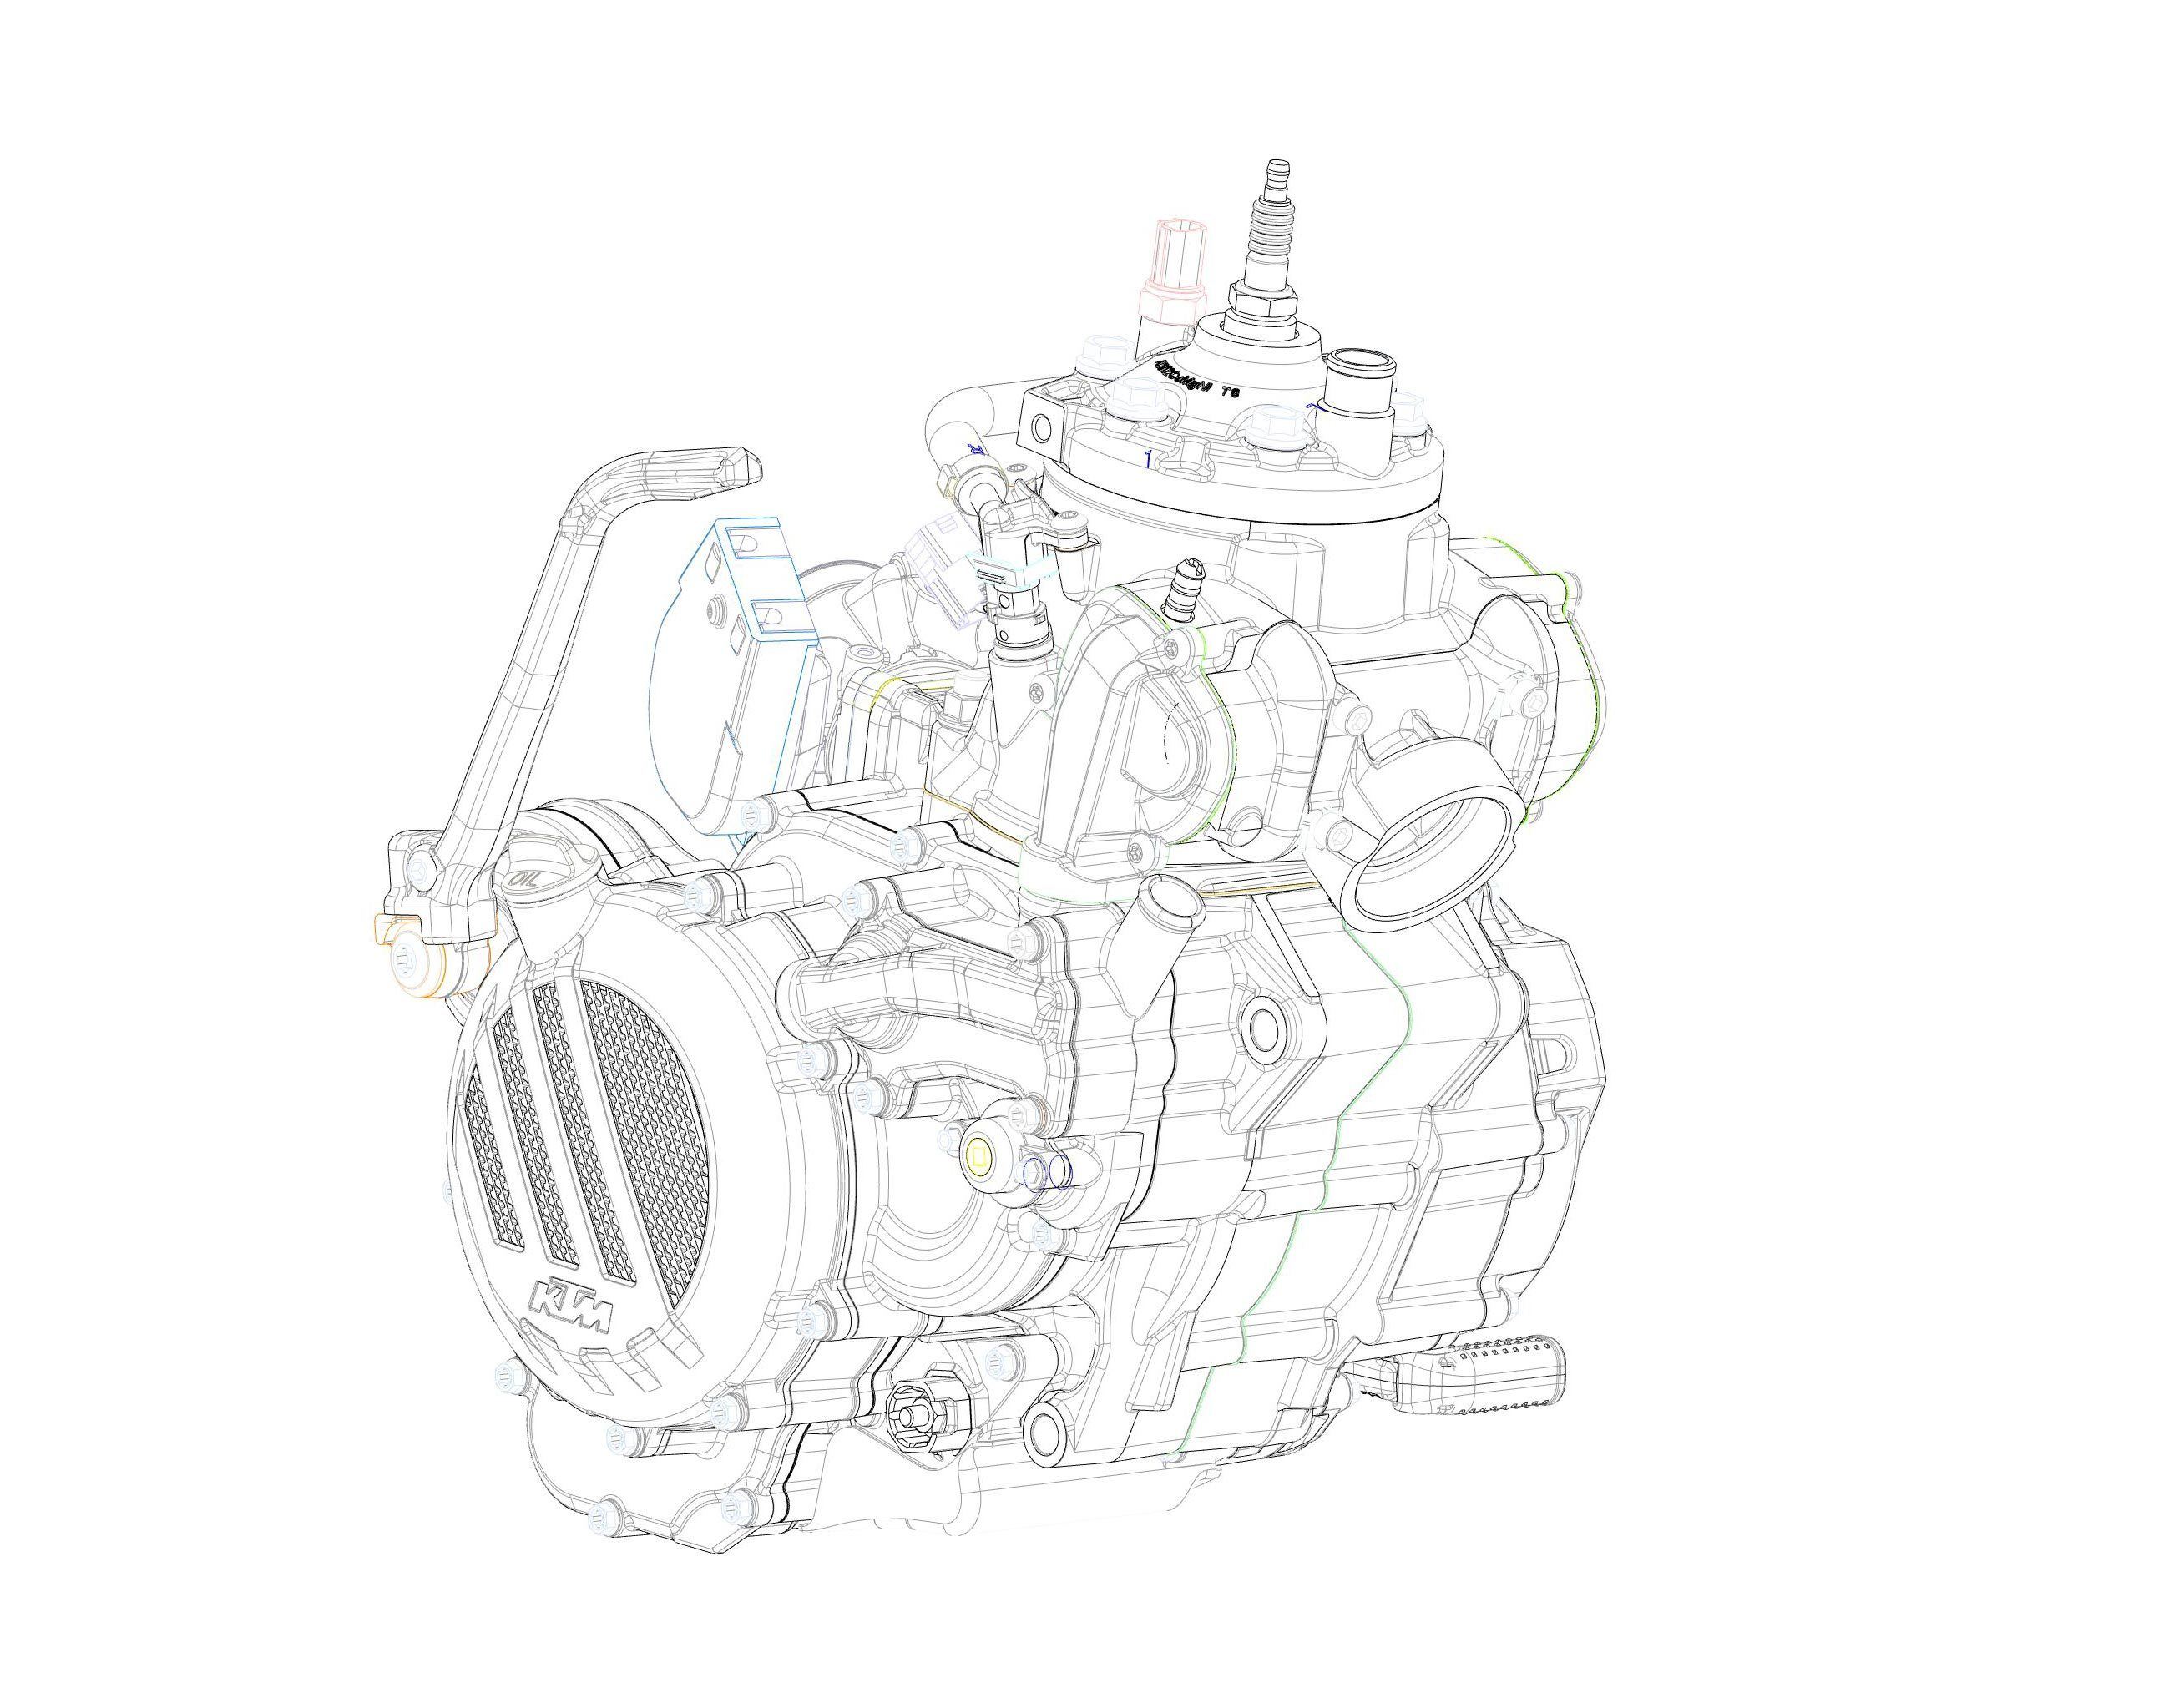 Ktm Introduces Fuel Injected Two Stroke Engine For